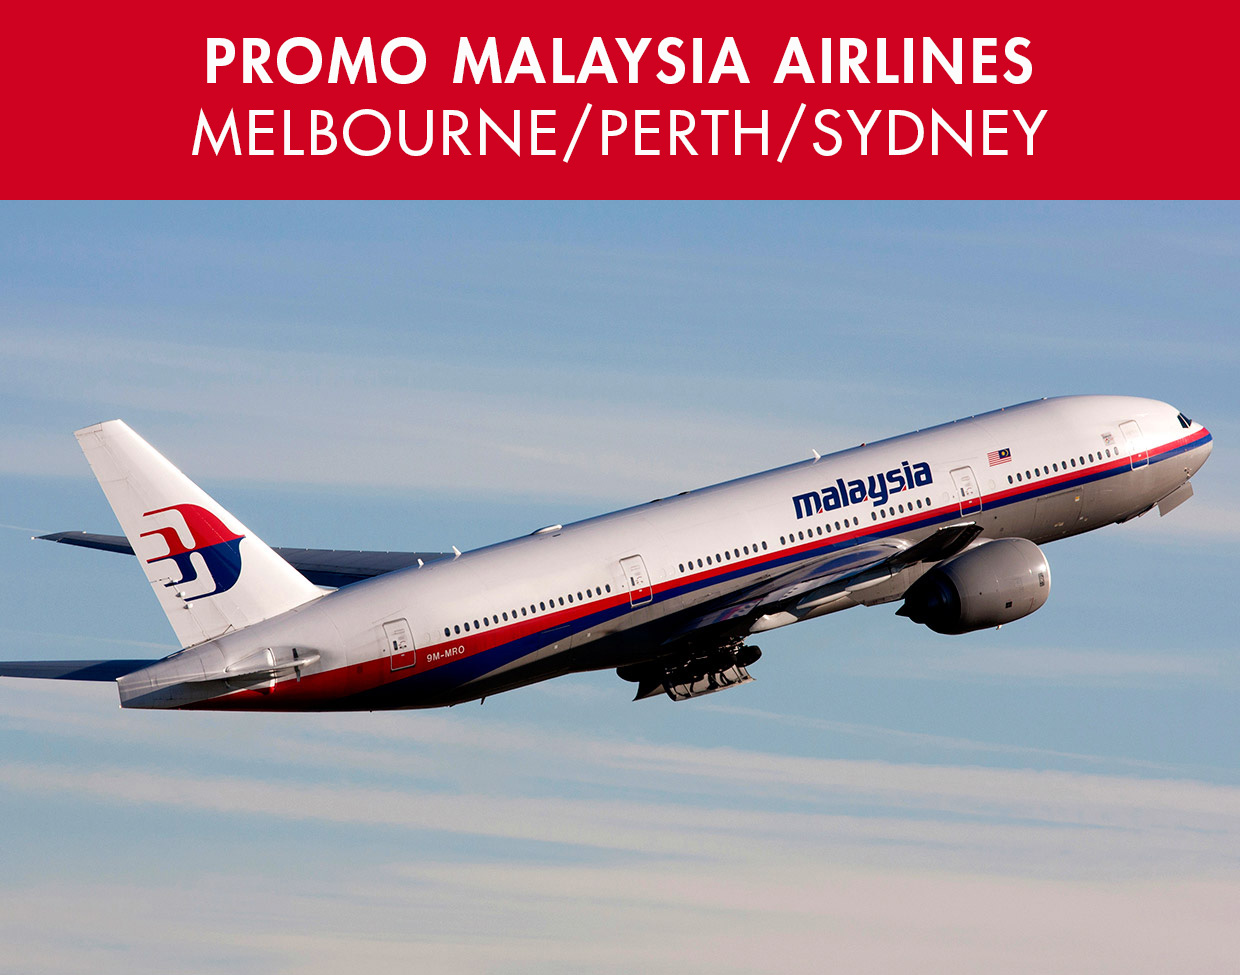 Airline Promotion Archives Atom Travel Ticket  Air Asia Periode 2018 2019 Malaysia Airlines Promo Australia